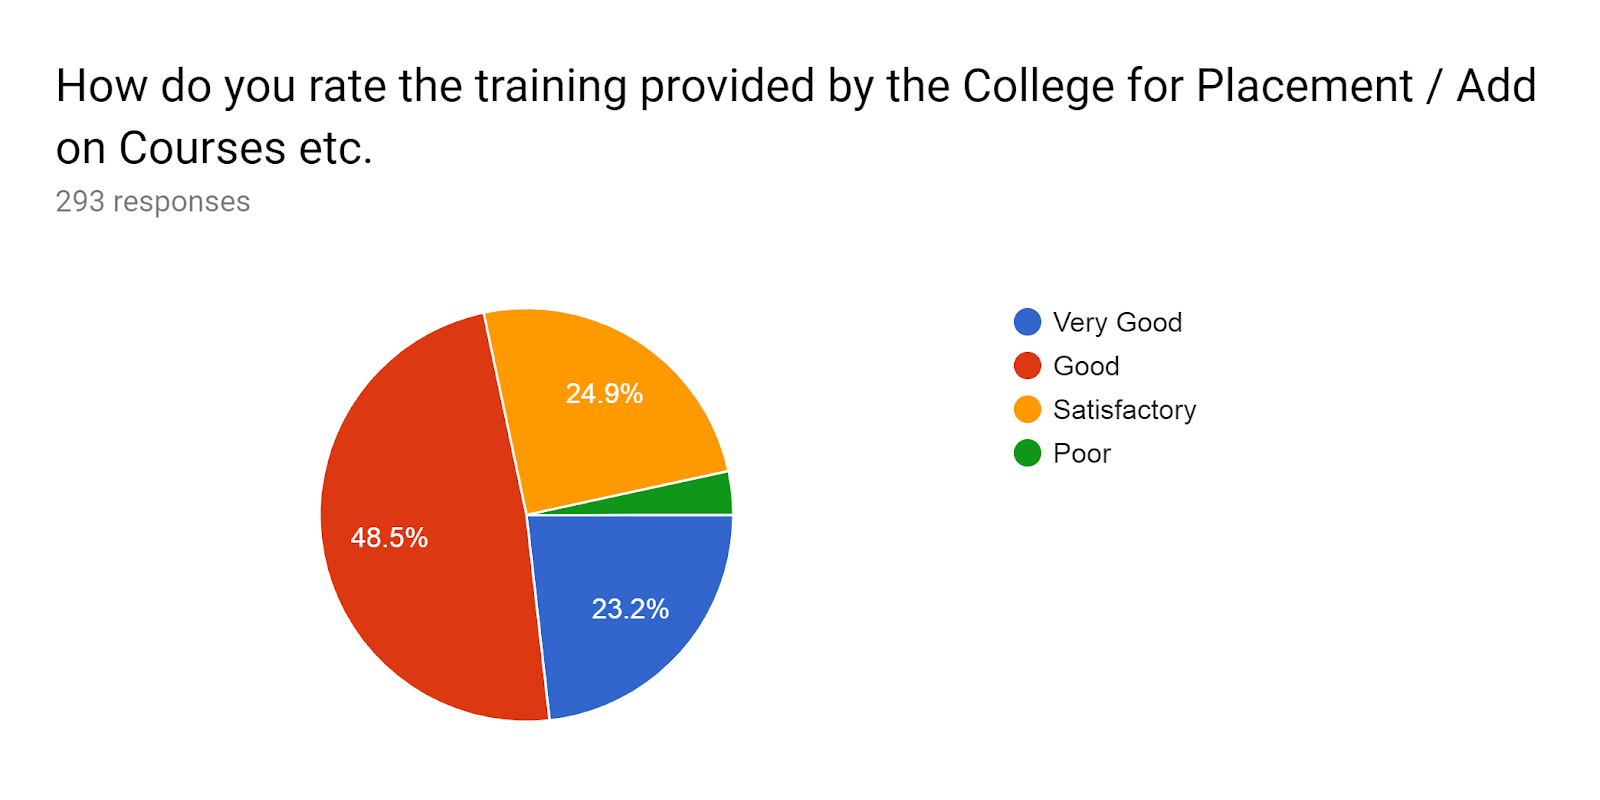 Forms response chart. Question title: How do you rate the training provided by the College for Placement / Add on Courses etc.. Number of responses: 293 responses.